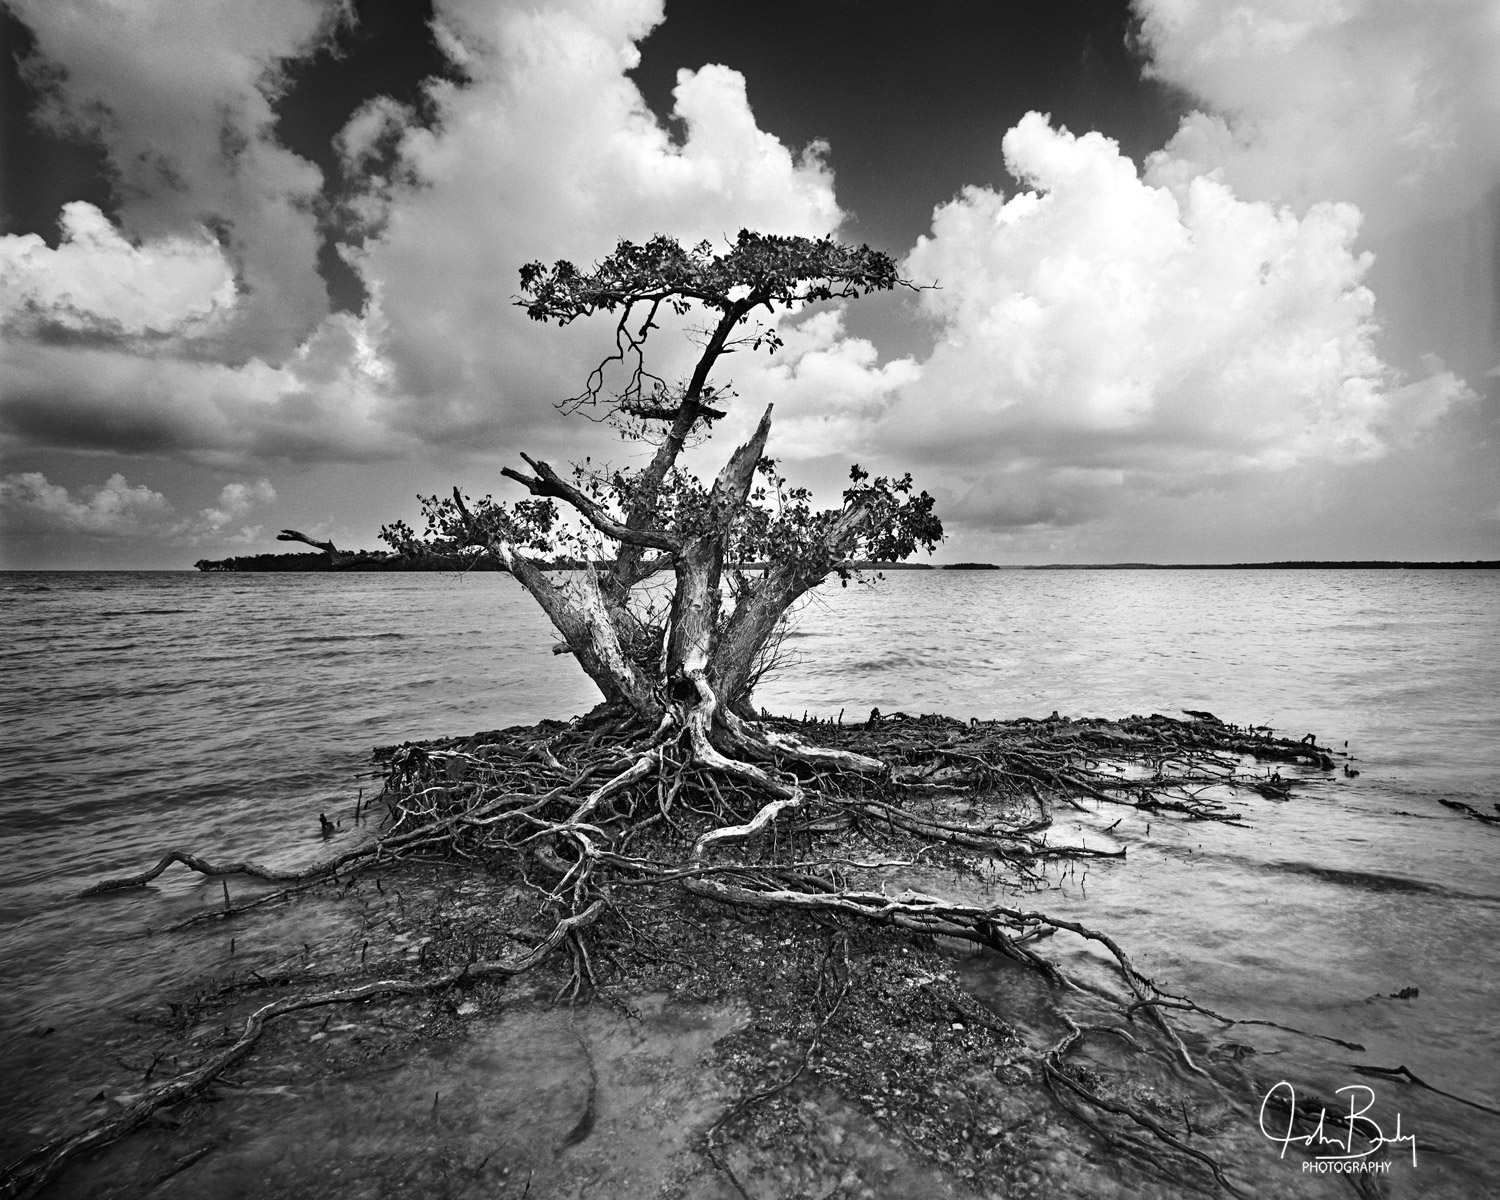 the ten thousand island national wildlife refuge, mangroves, everglades national park, jewel key, hog key, round key, turkey key, white horse key, rabbit key, demijohn key, dismal key, lost mans river, photo